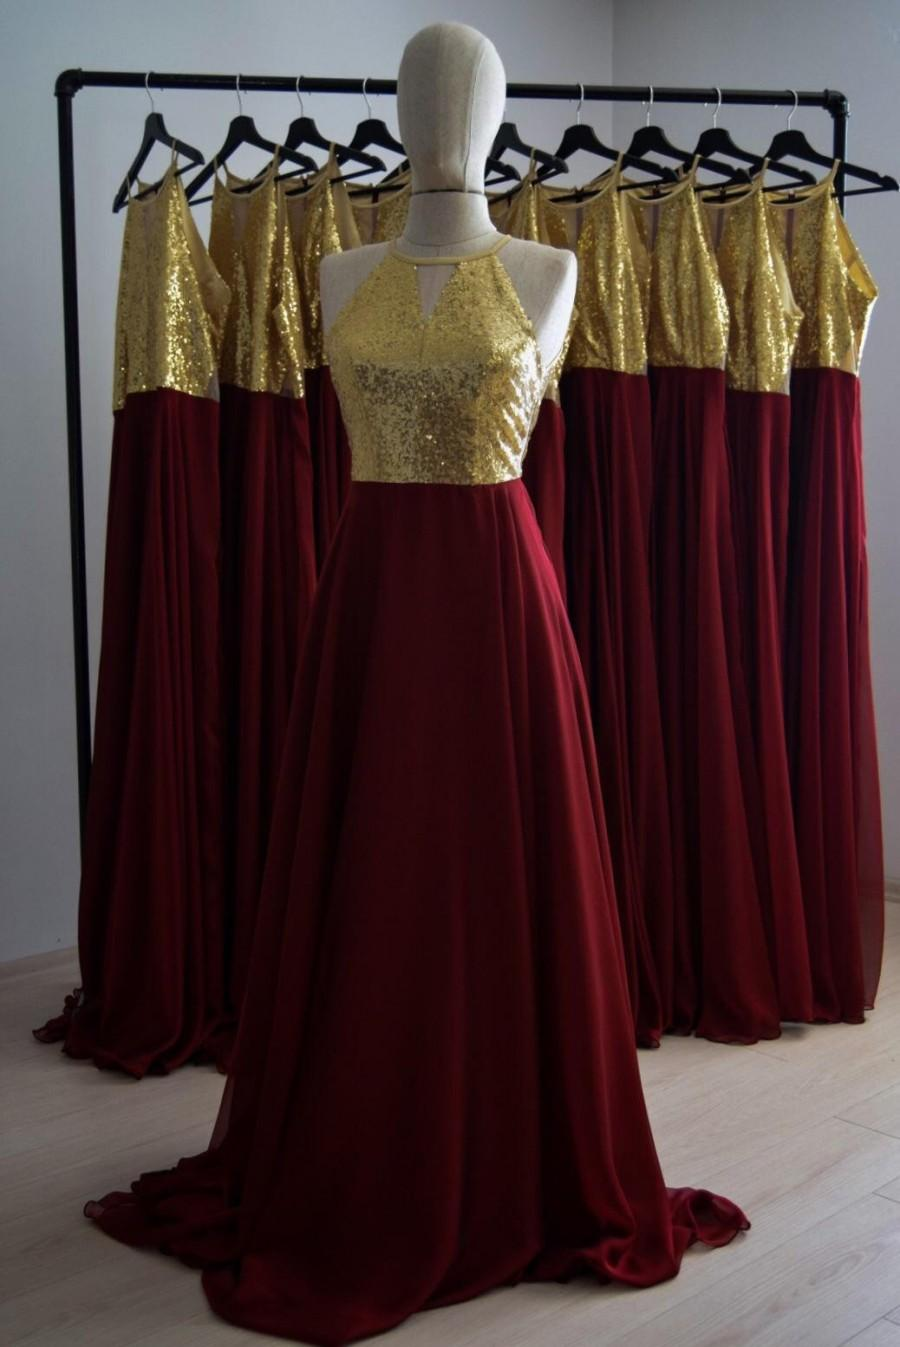 Mariage - Burgundy Silk Georgette/Chiffon With Top Sequin Gold Bridesmaid Dress, Floor Length Sequin Evening Dress, Wedding Party Maid Of Honor Dress